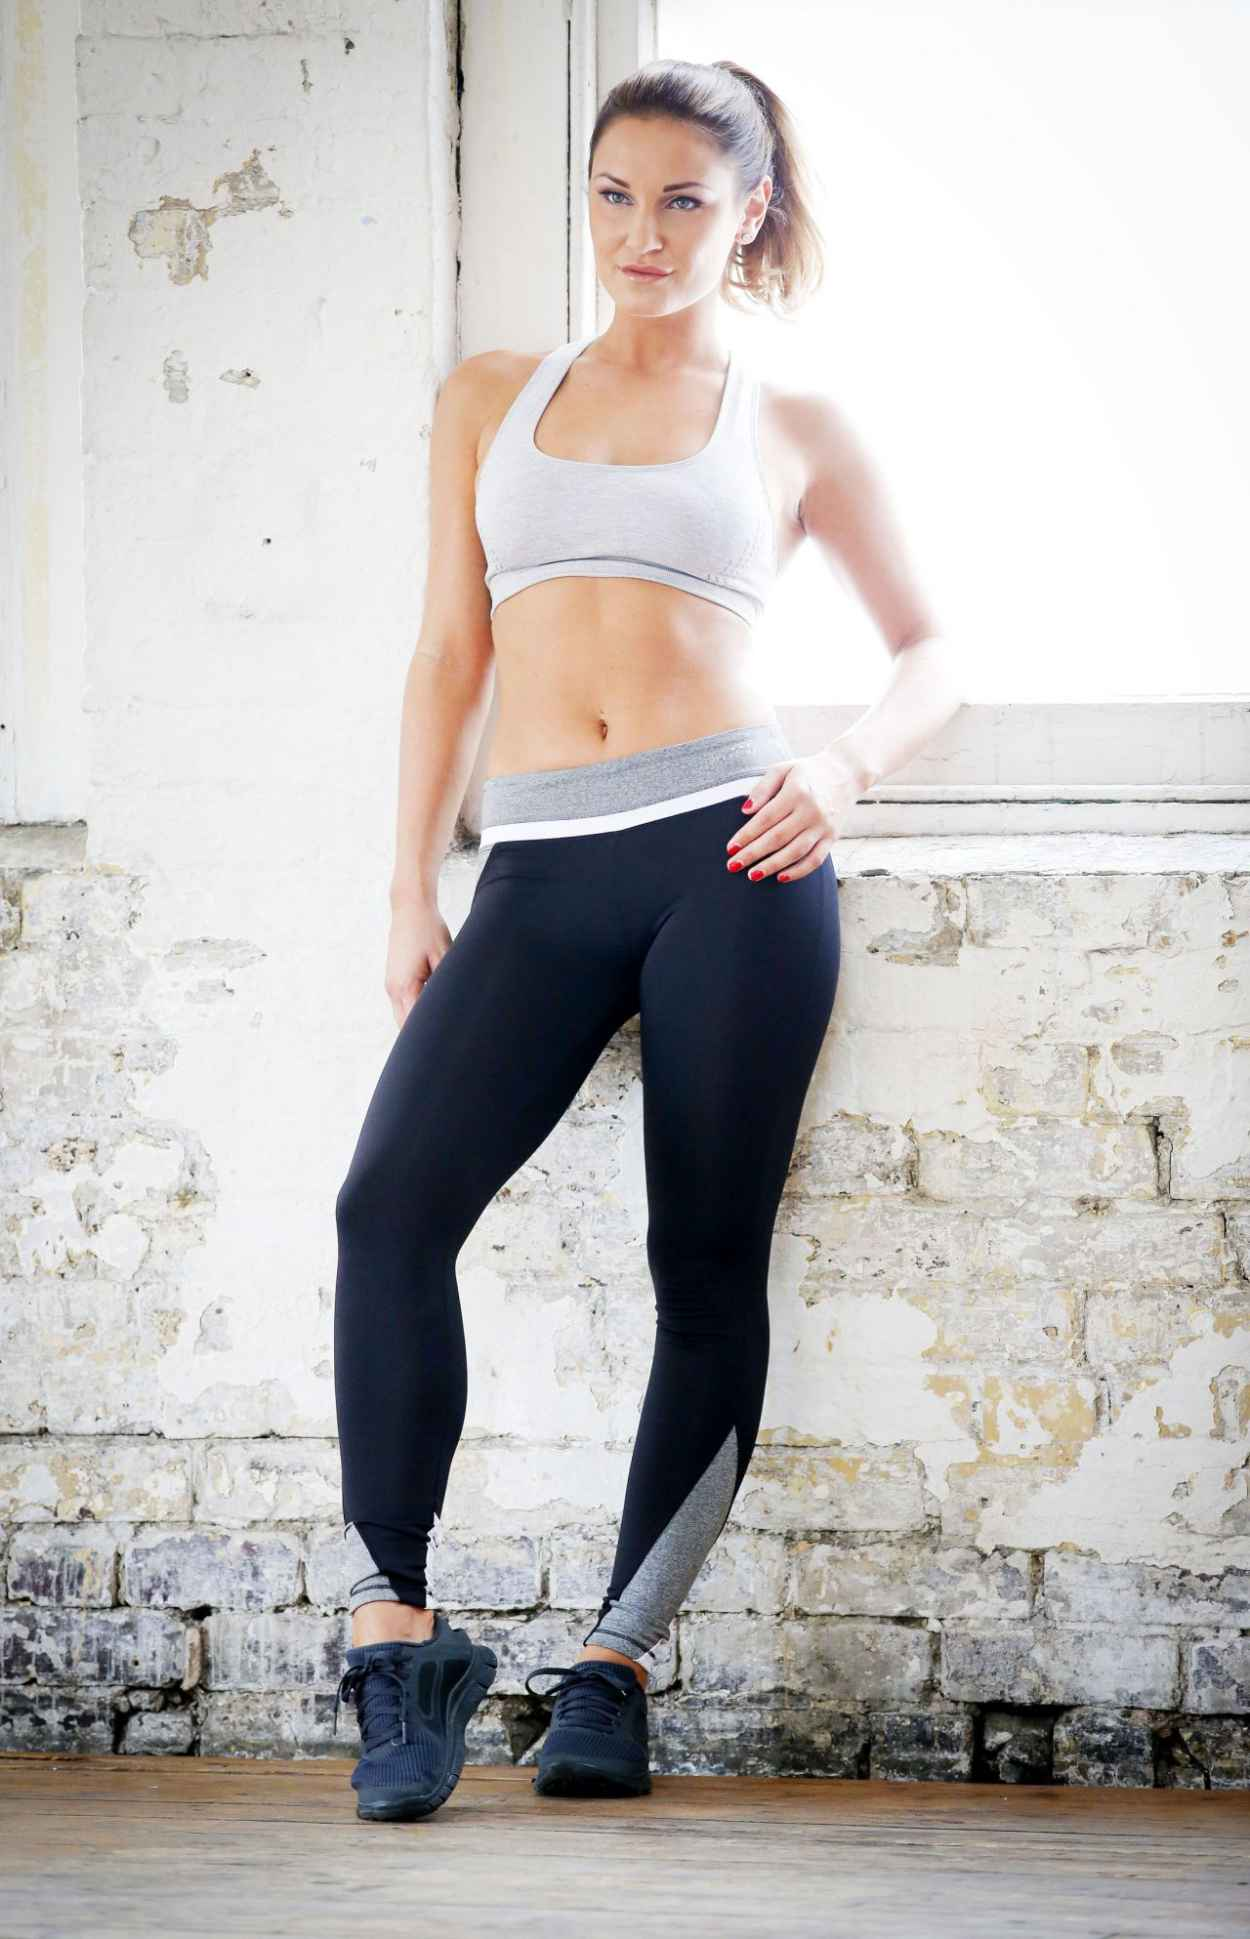 Sam Faiers - Workout PhotoShoot (2014)-1